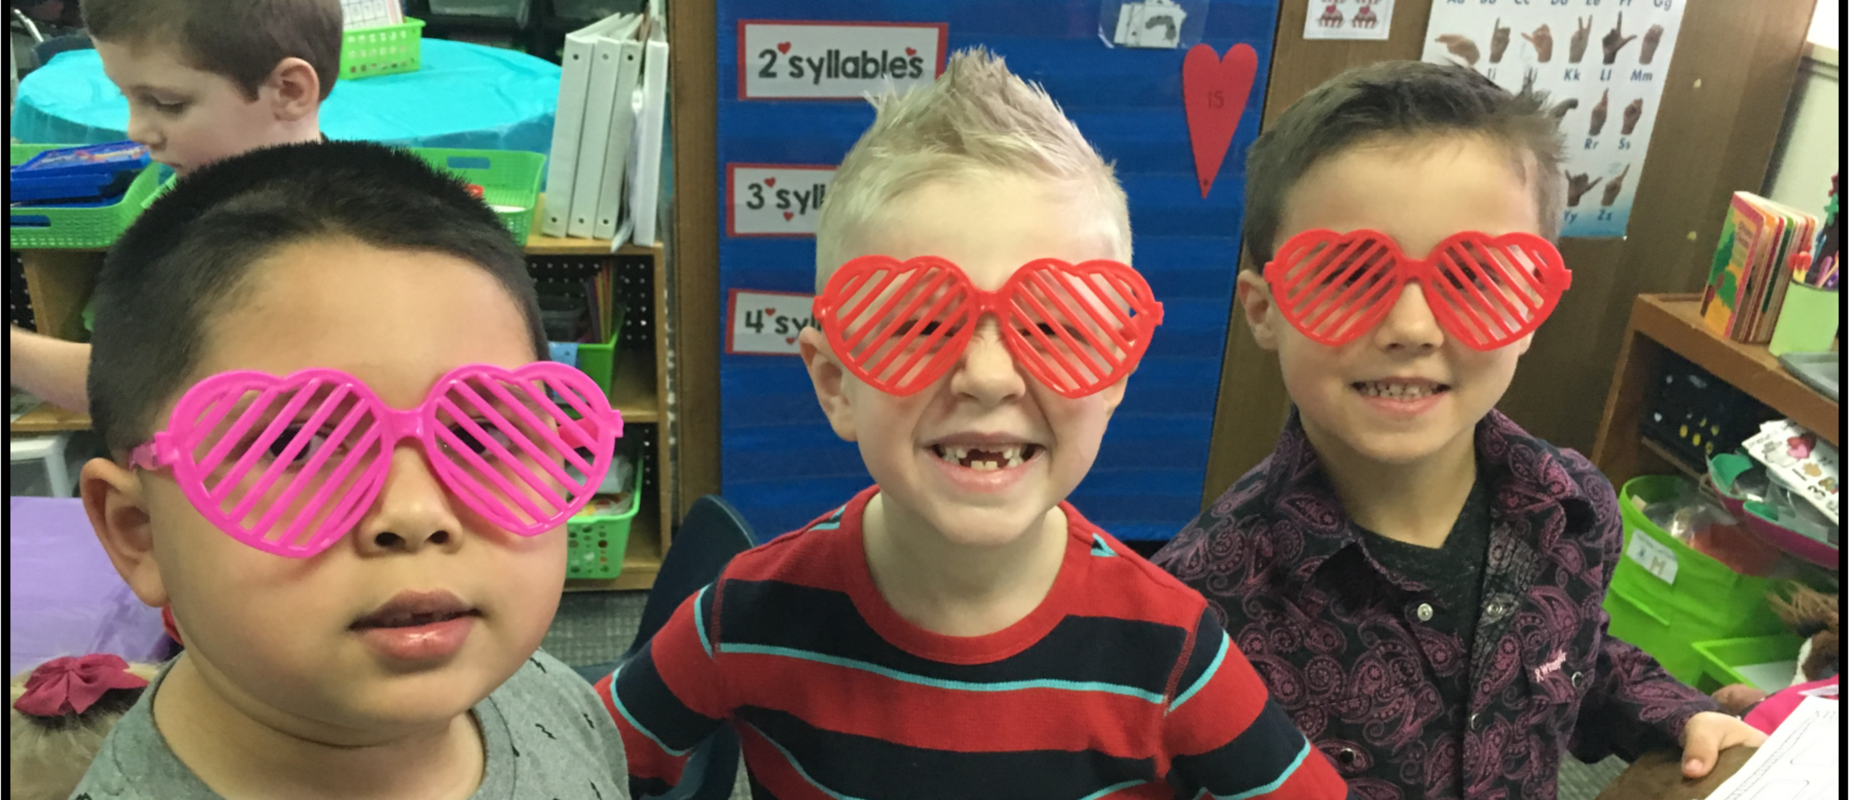 students smiling with glasses on